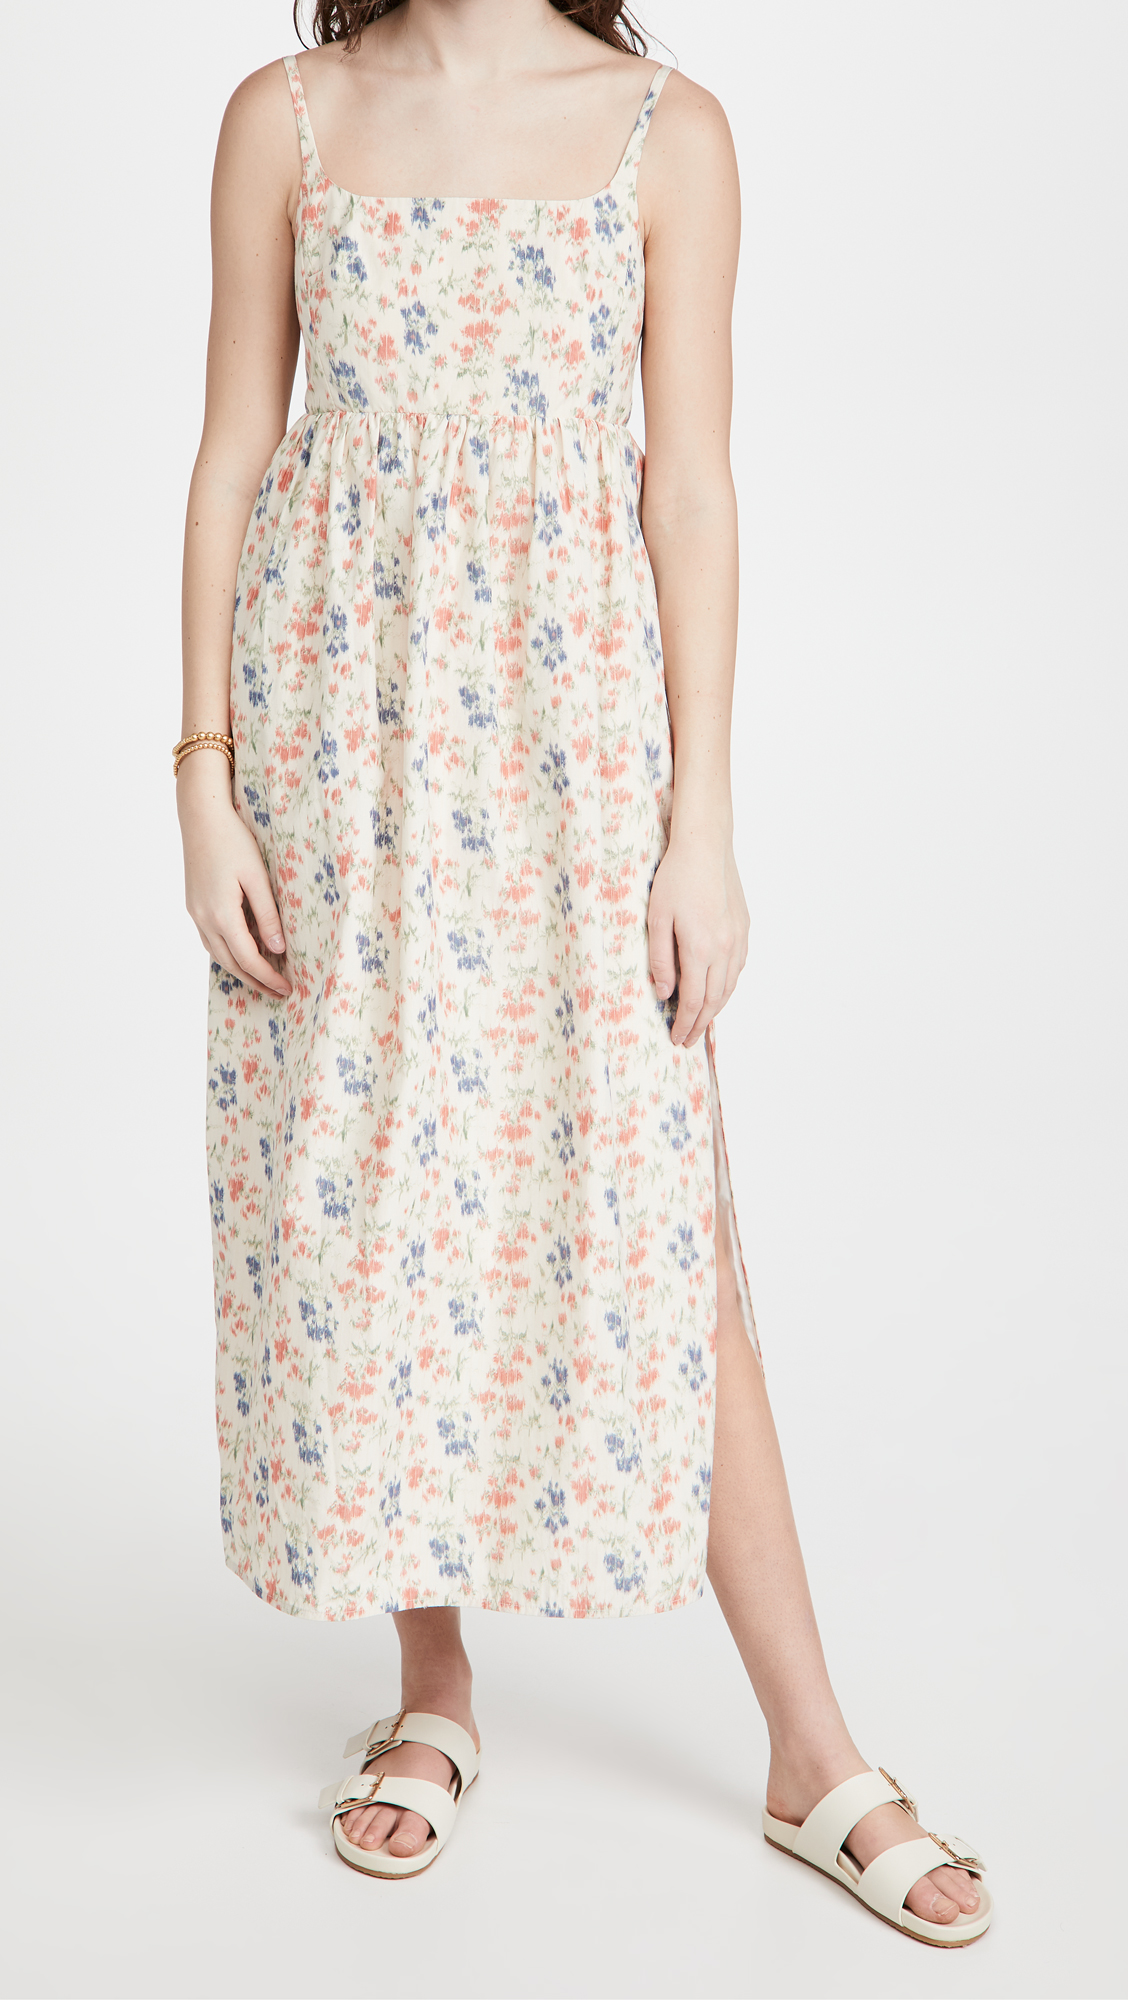 Rebecca Taylor Sleeveless Emma Dress